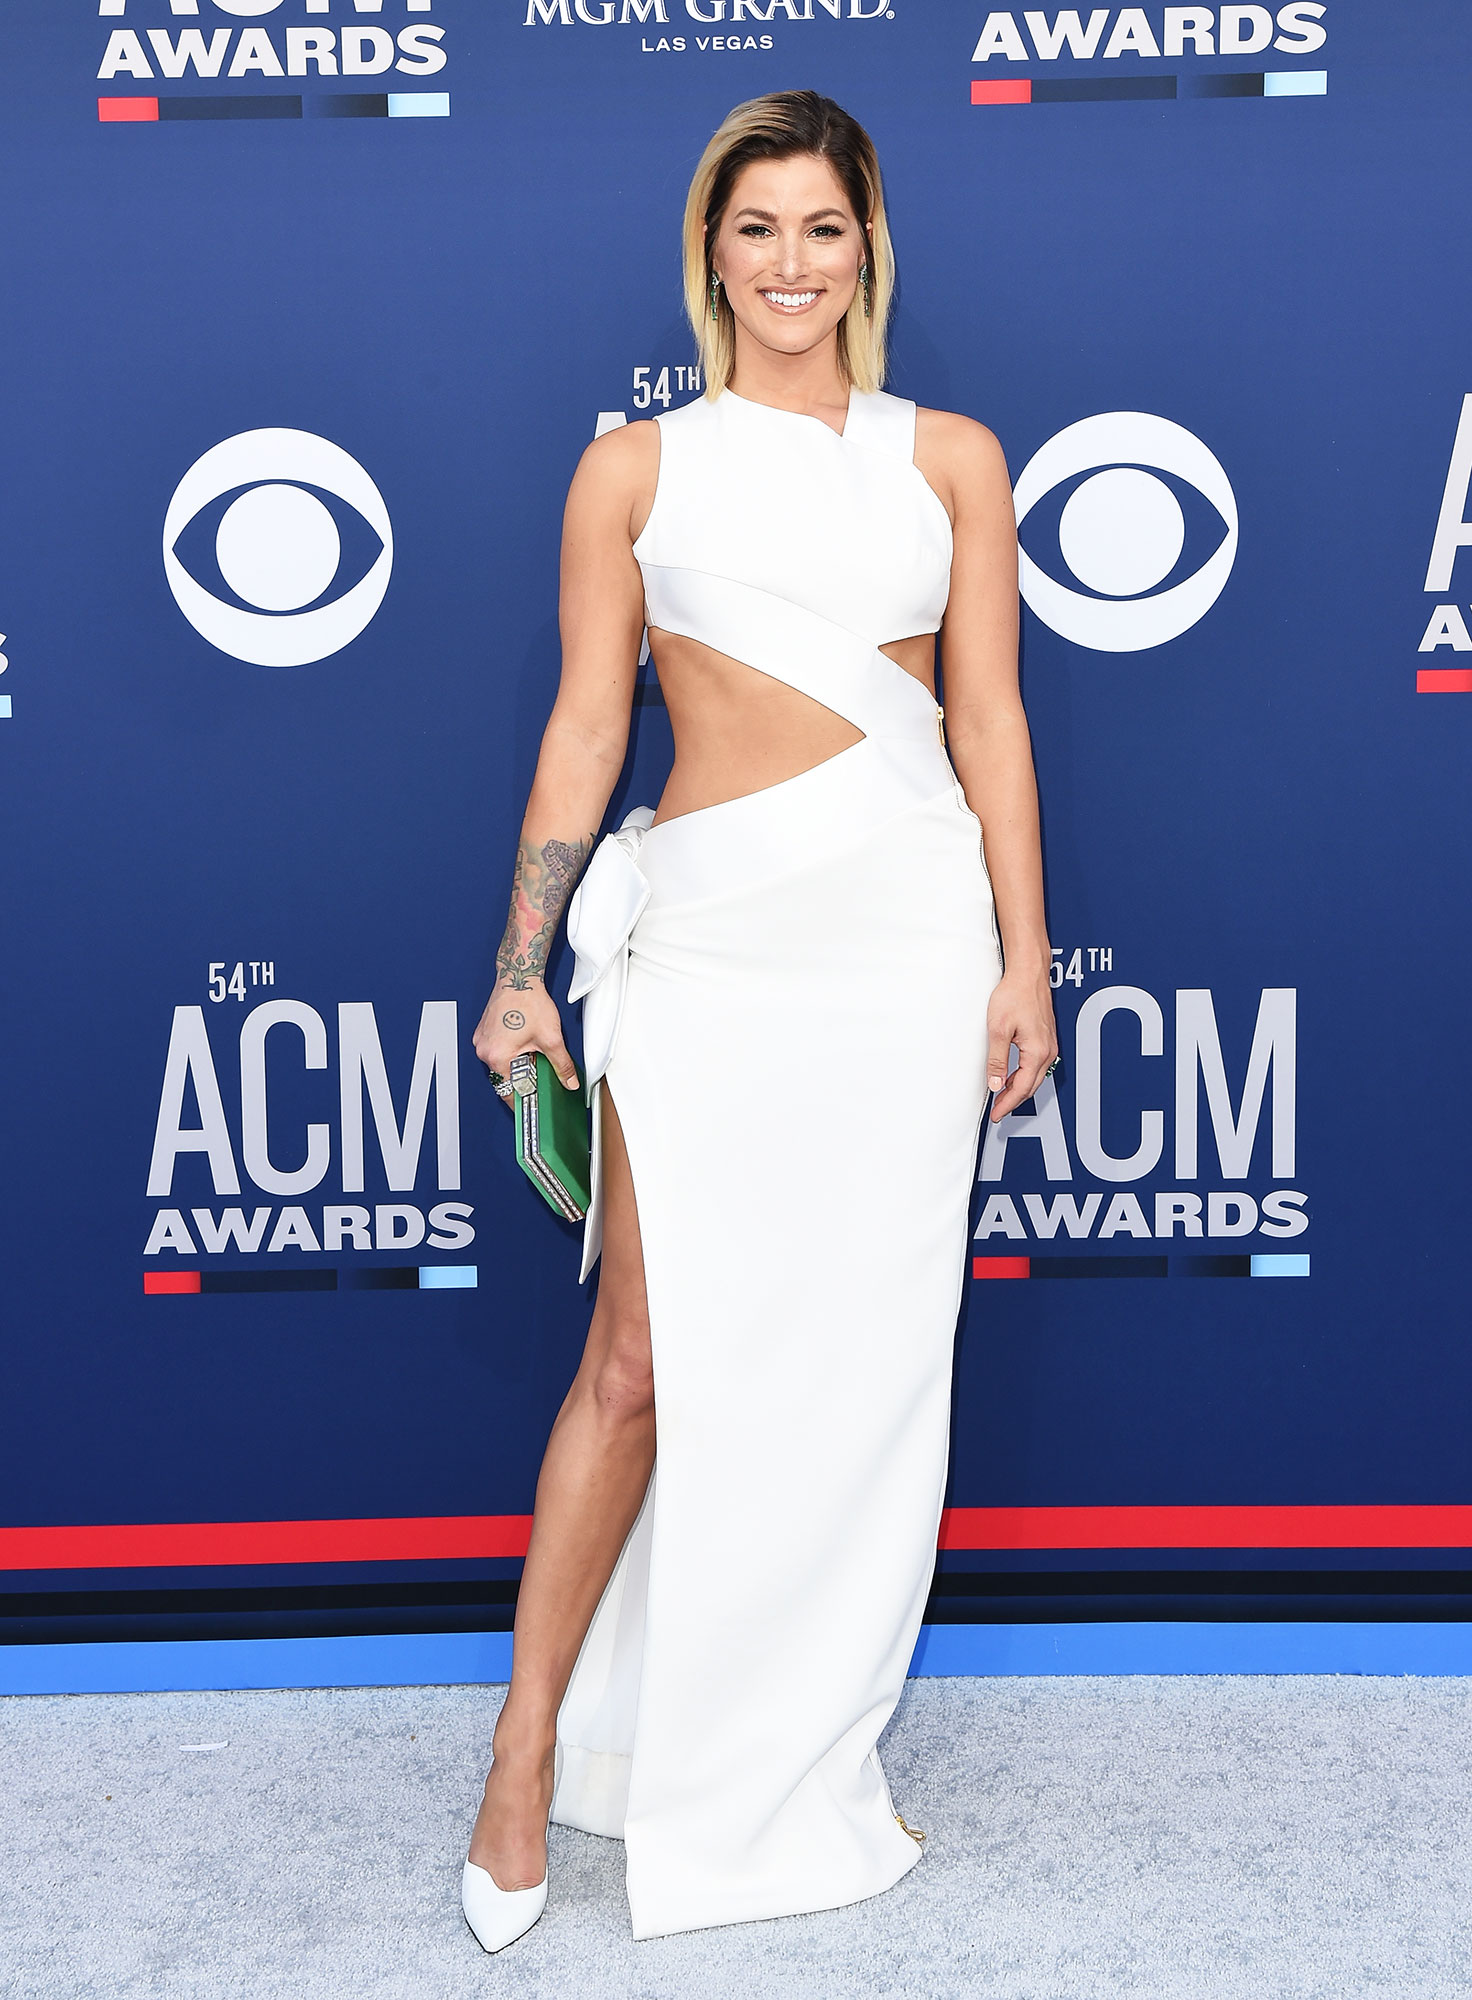 """Cassadee Pope The Best Looks From the Country Music Awards Red Carpet - In an all-white number, the """"Think of You"""" singer's dress featured sexy but classy cutouts."""